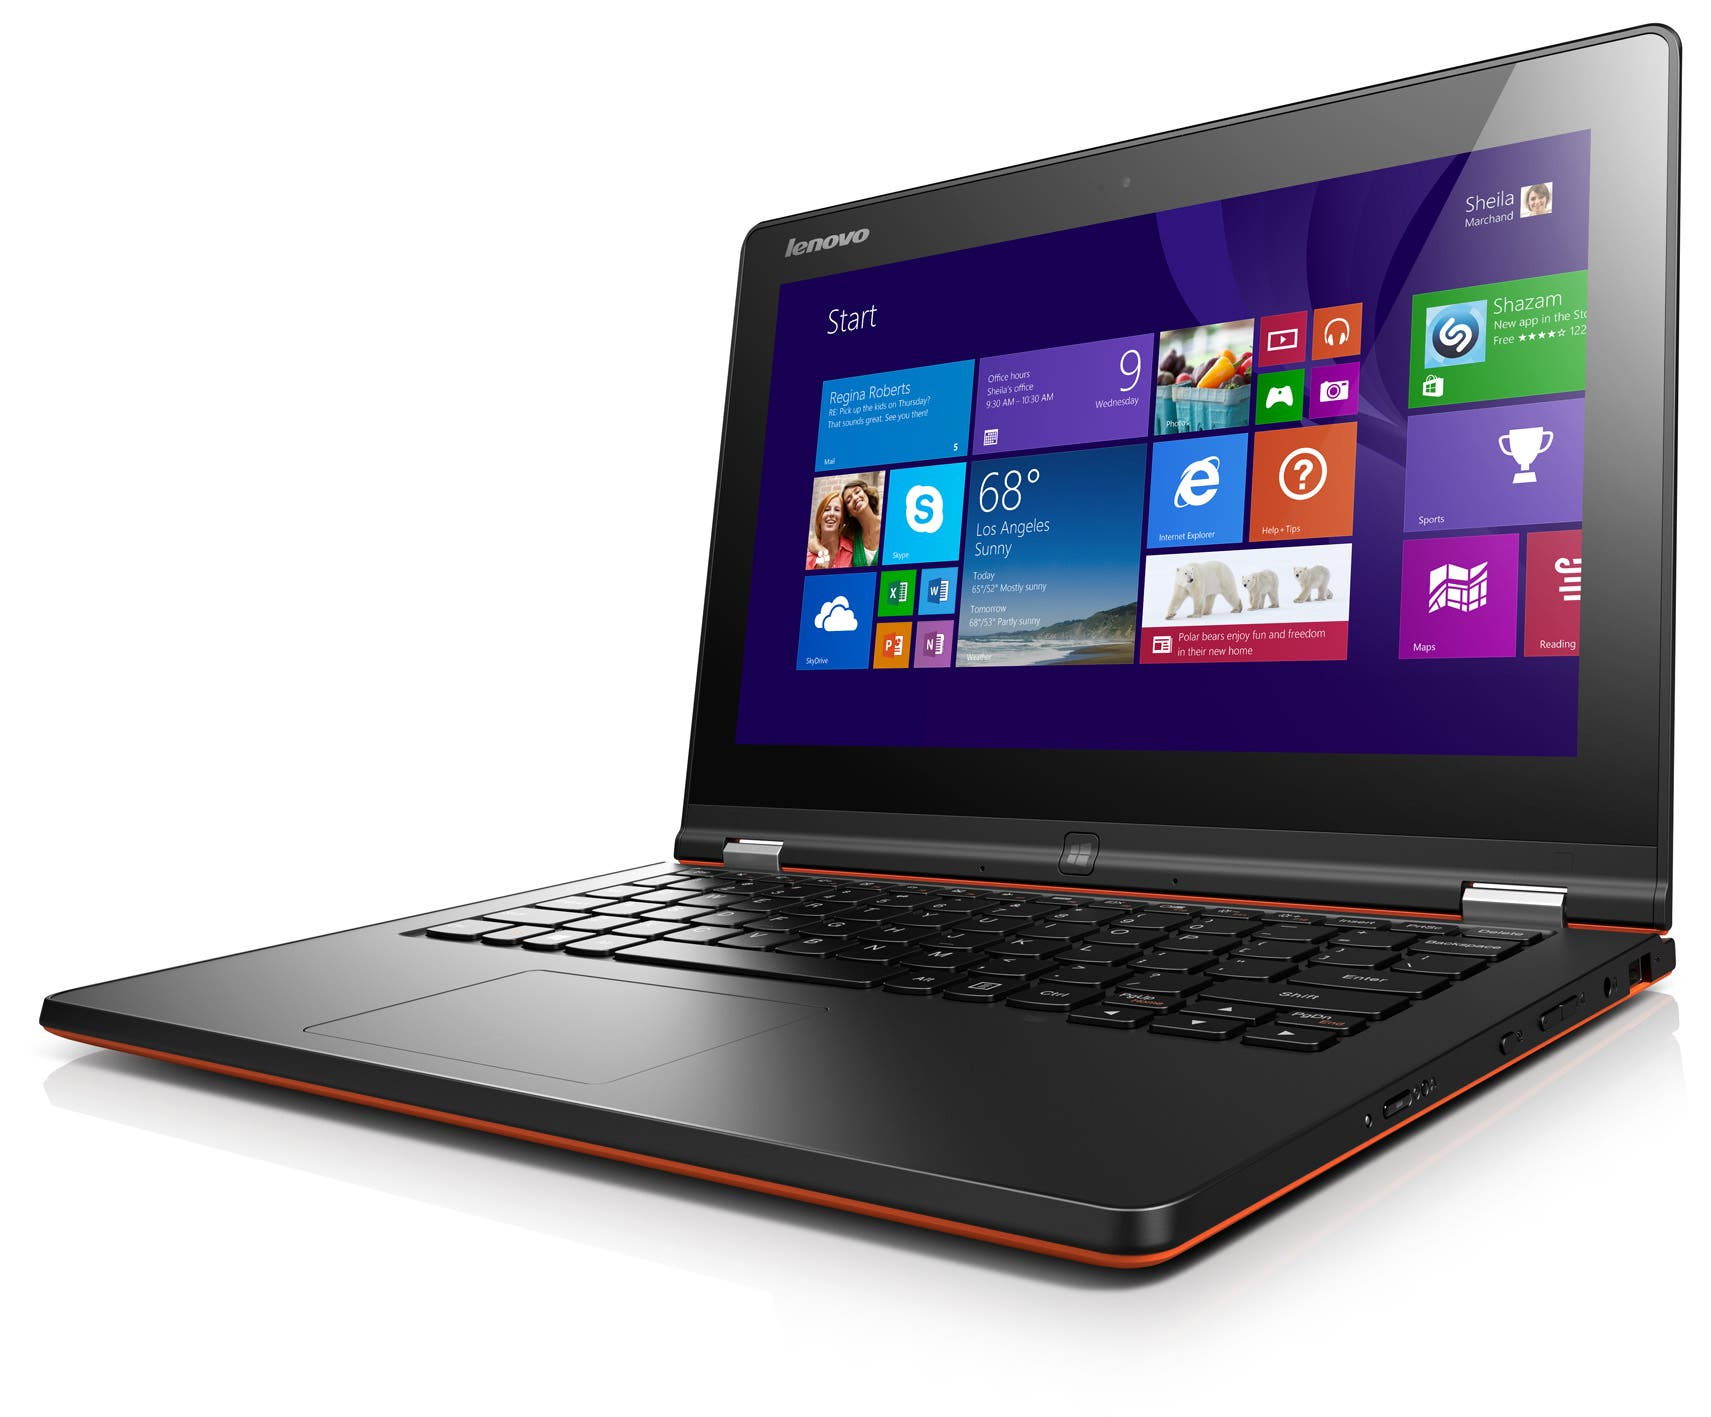 CES 2014 – Lenovo Yoga 2 11 und Lenovo Yoga 2 13 Tablet-Notebooks vorgestellt – Specs & Hands-on Videos